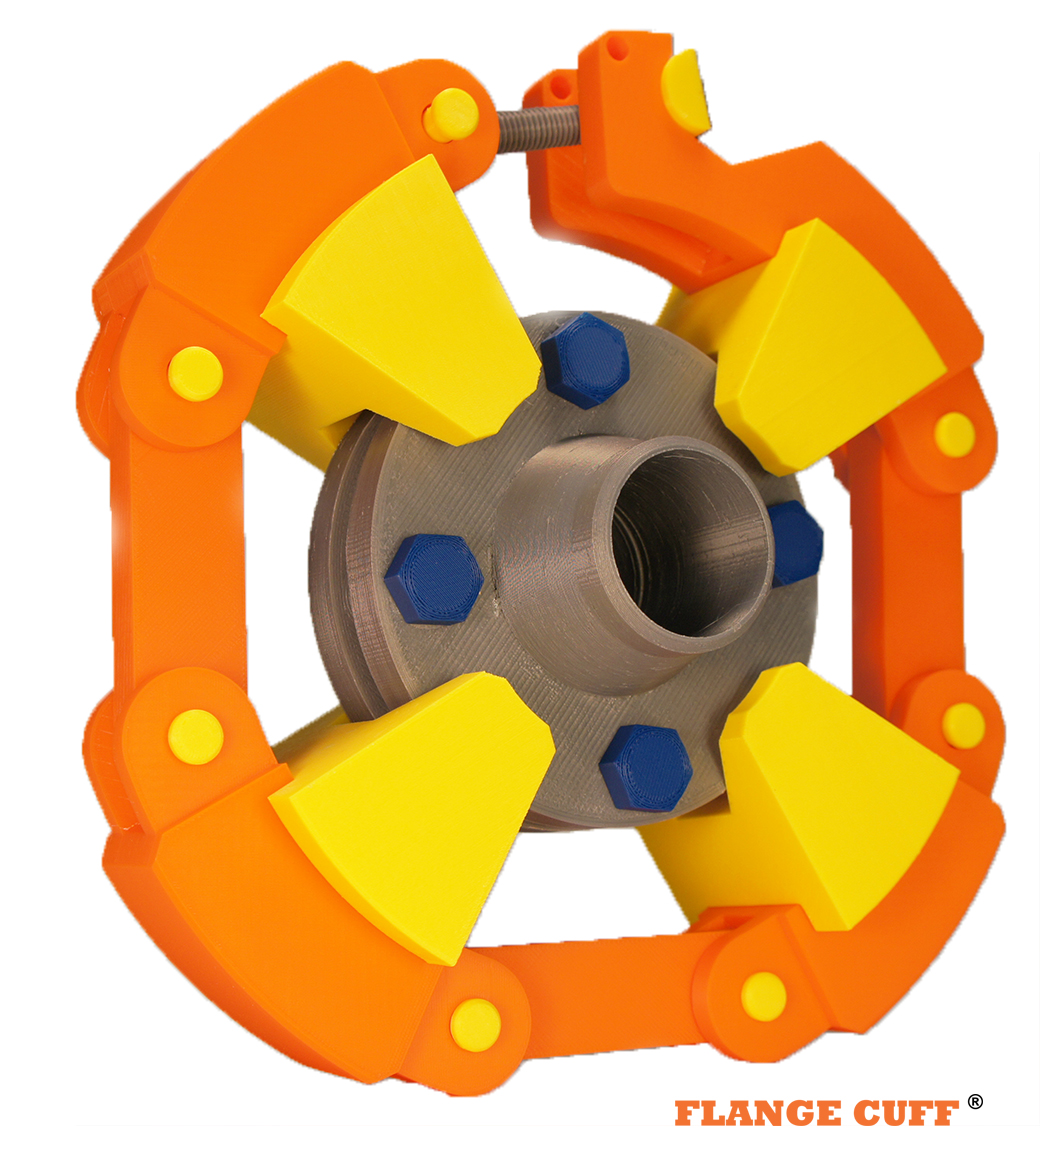 Nacher Corp. flange cuff model